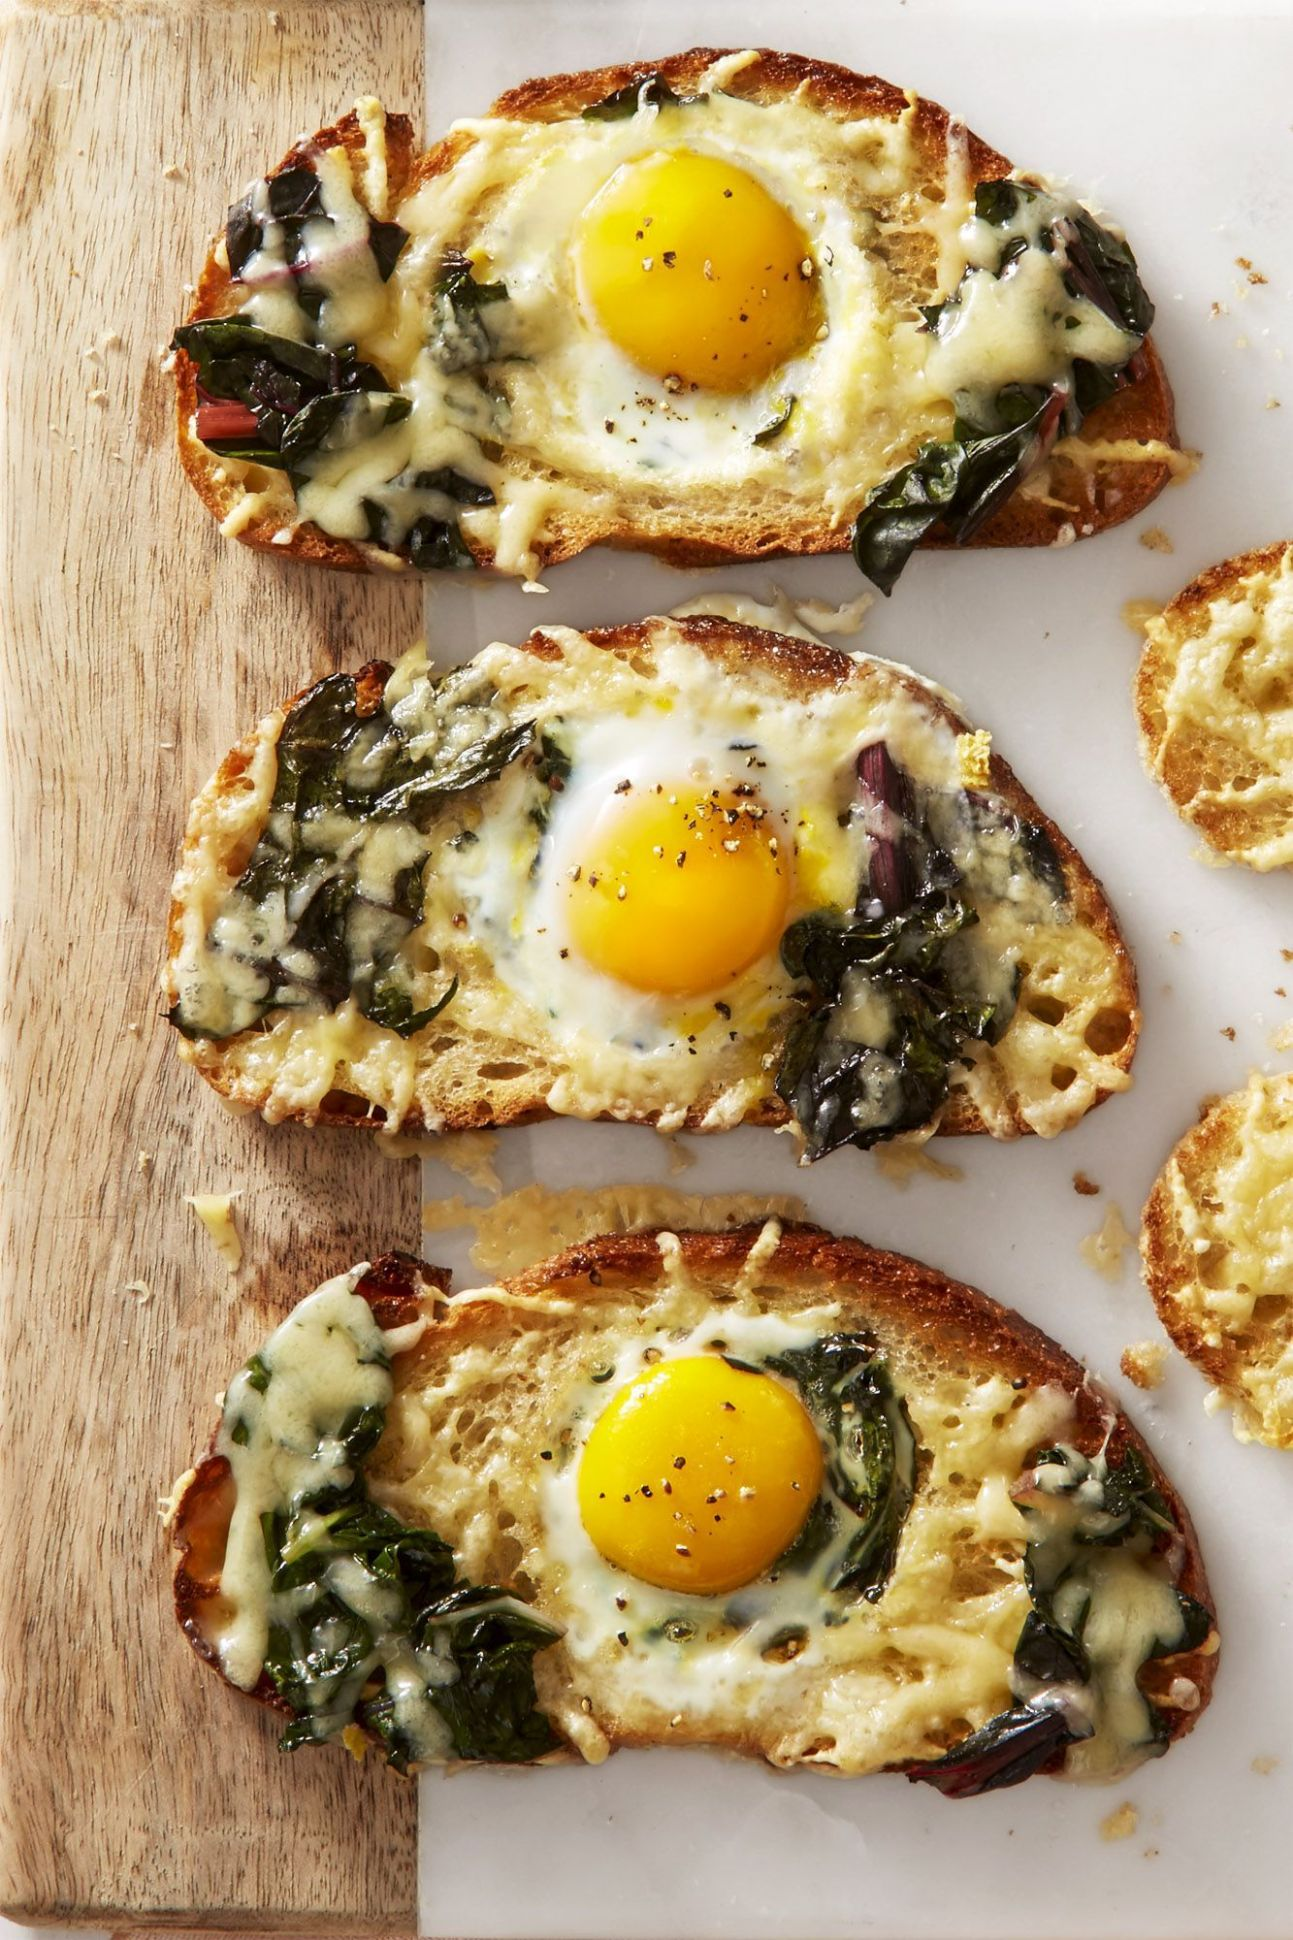 9+ Easy Egg Recipes - Ways to Cook Eggs for Breakfast - Recipe Egg Ideas